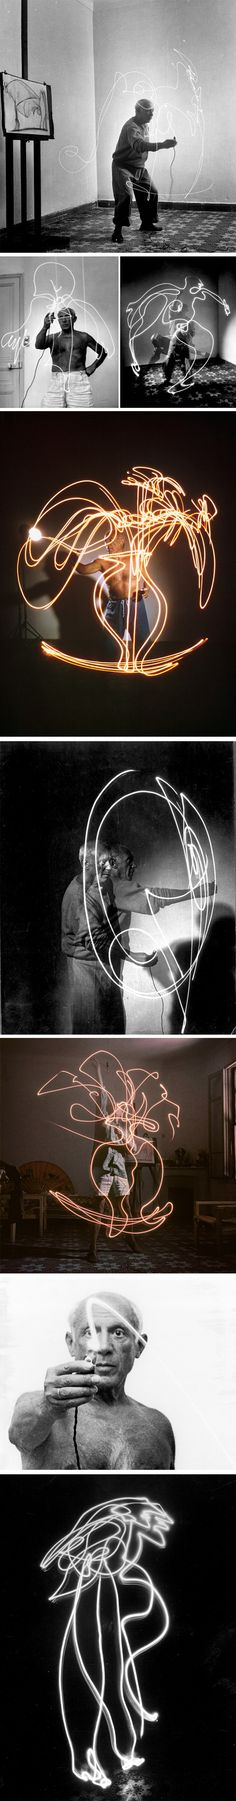 Light Drawings de Pablo Picasso // http://www.journal-du-design.fr/index.php/art/light-drawings-de-pablo-picasso-27863/